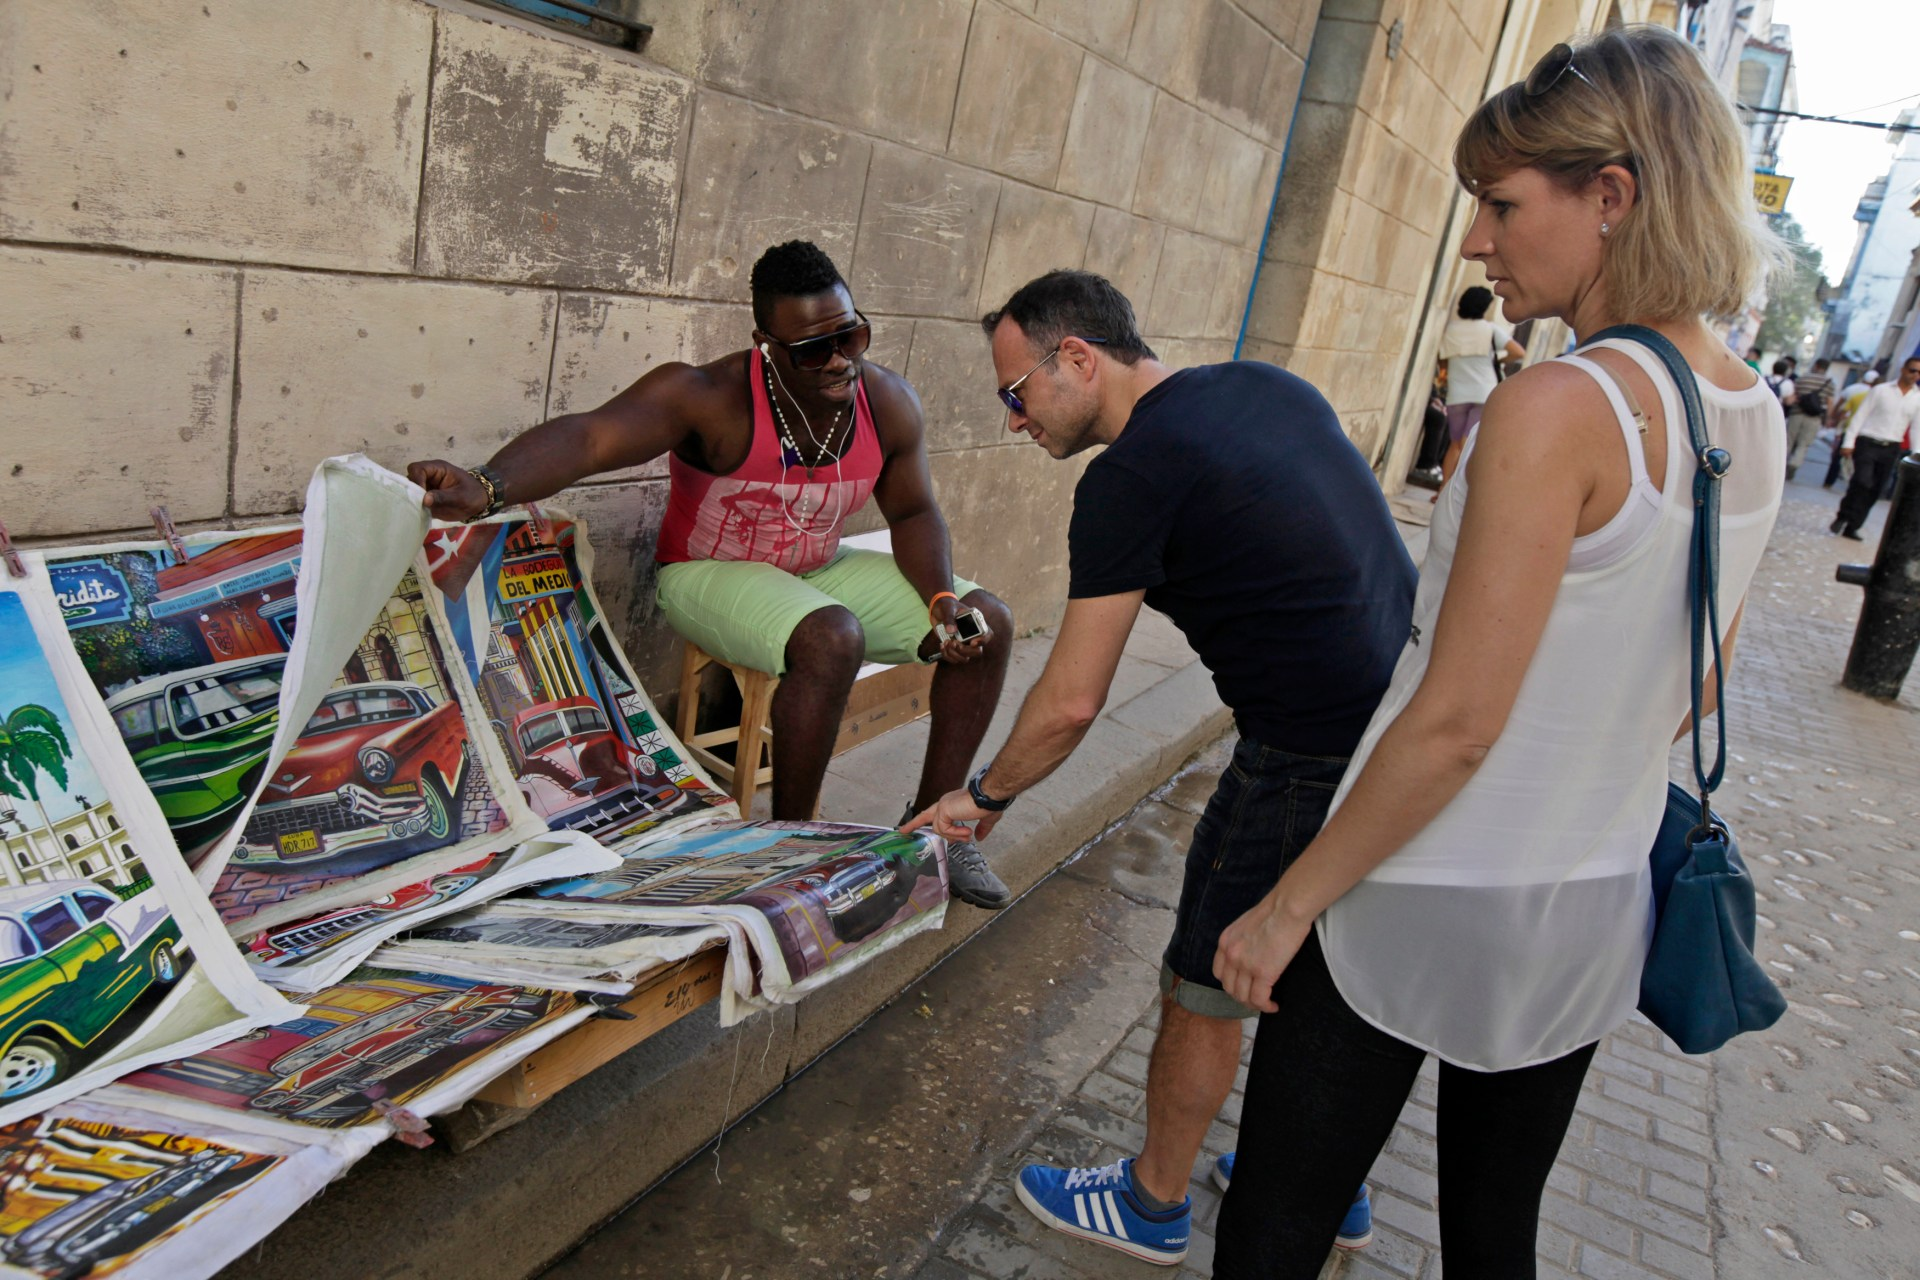 A man shows tourists prints for sale in Old Havana December 18, 2014. From bus drivers to bartenders and ballet dancers, many Cubans are already imagining a more prosperous future after the United States said it will put an end to 50 years of conflict with the communist-run island. News of the historic shift echoed quickly through the Spanish colonial plazas of Old Havana, where strains of trova and son rose from outdoor cafes, Cuban music that is a siren song for foreign tourists. REUTERS/Enrique De La Osa (CUBA - Tags: POLITICS SOCIETY TRAVEL) - RTR4IMCL